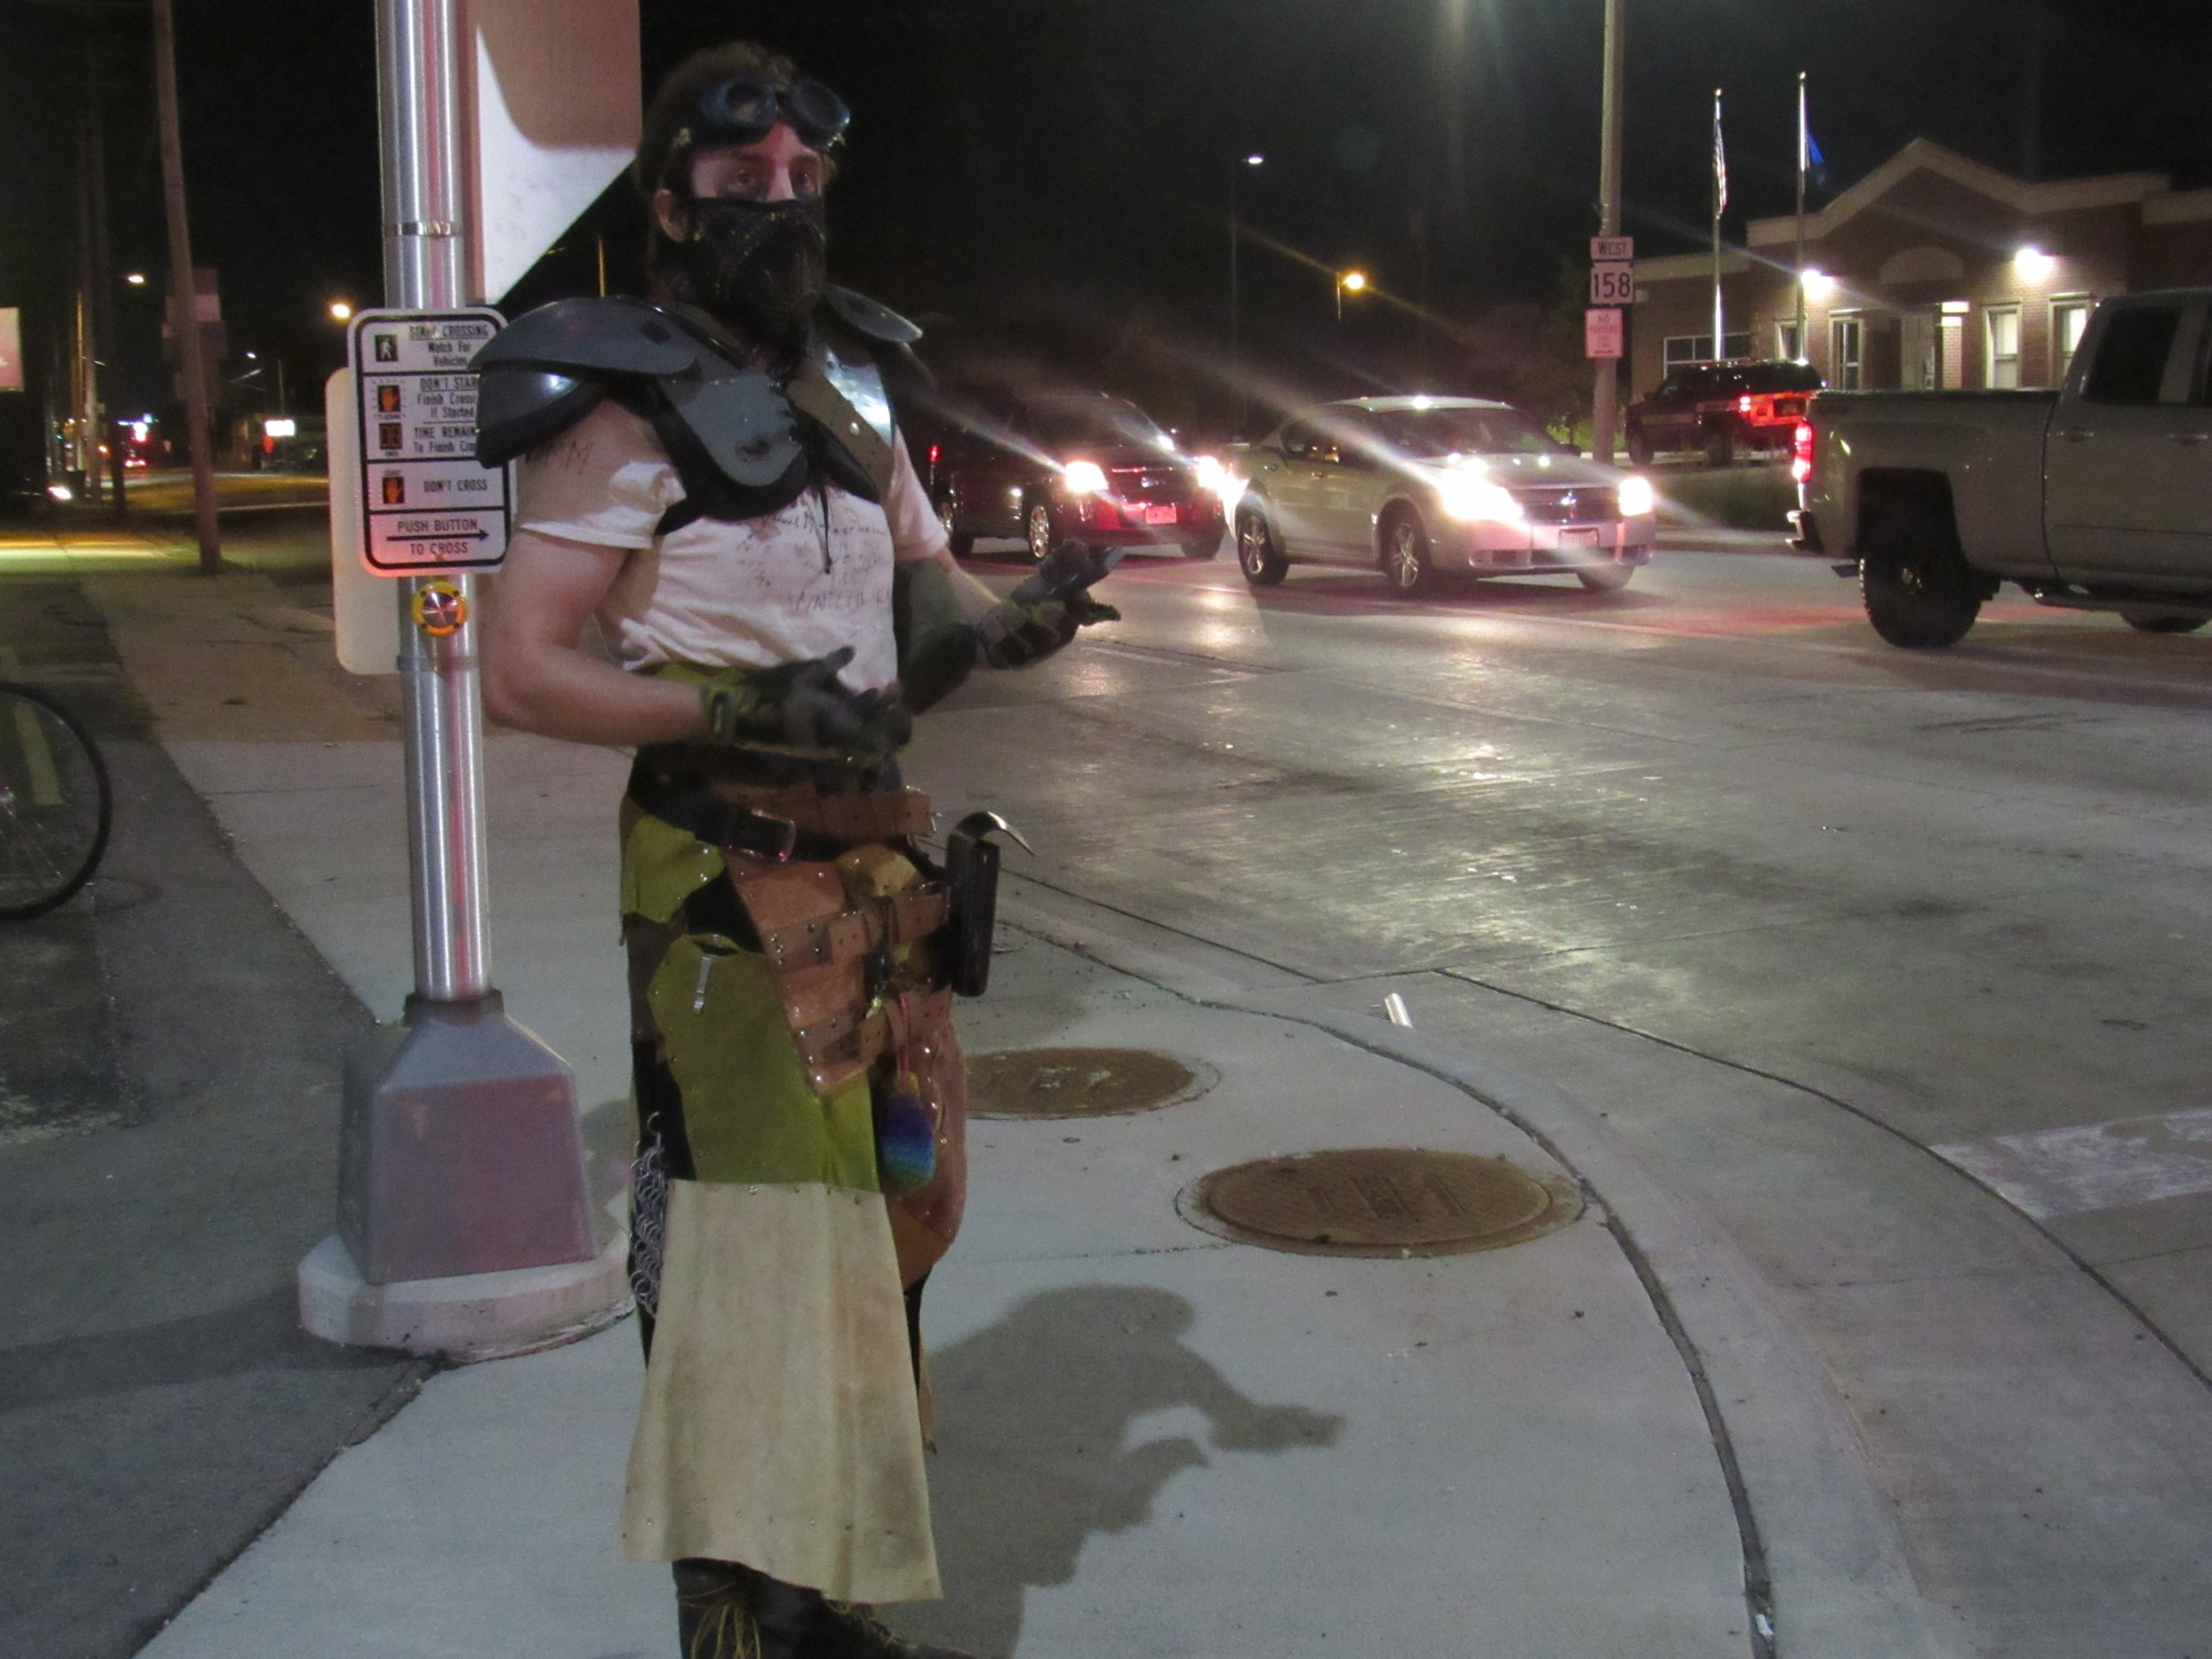 A protester wearing improvised body armor and other unusual clothing. (Photo by Isiah Holmes)